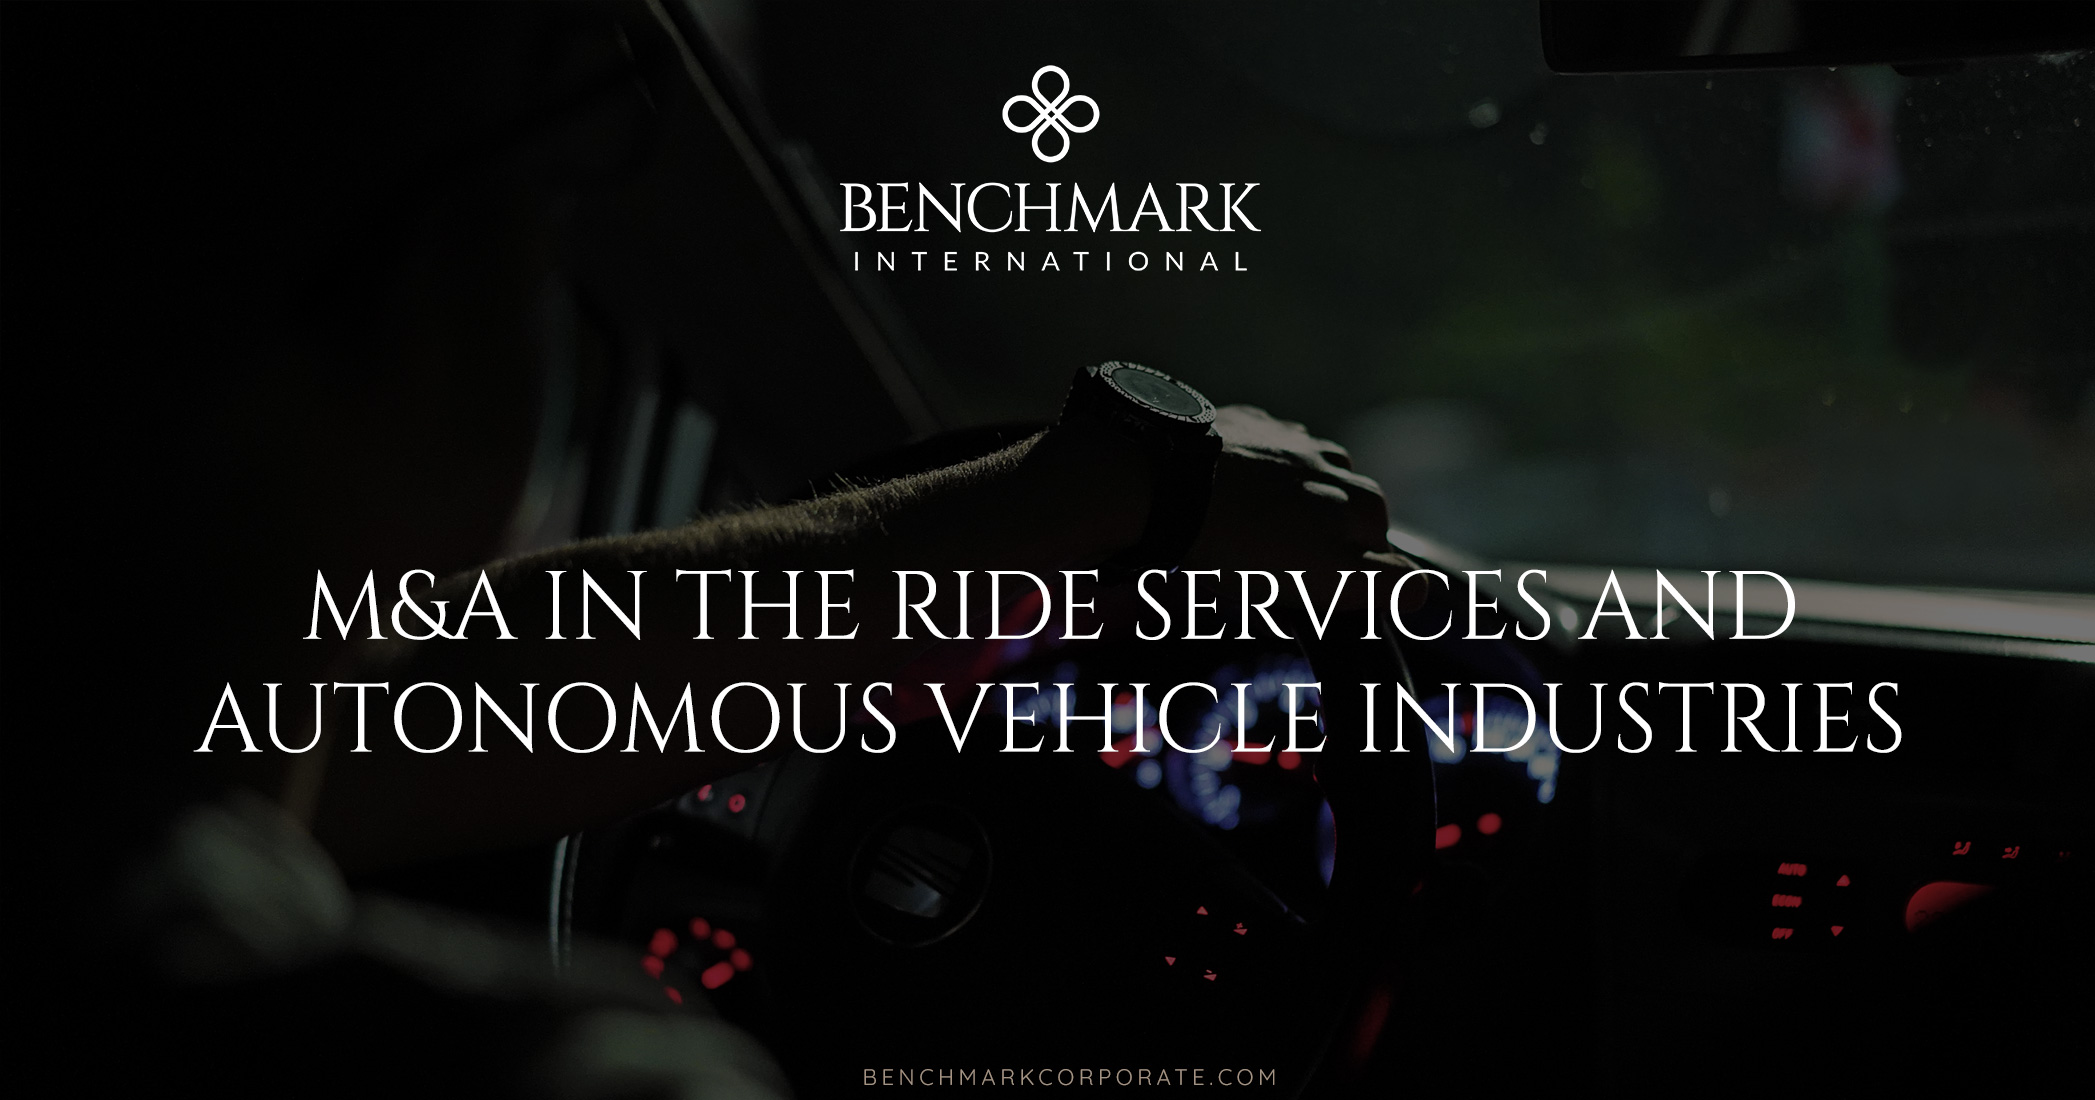 M&A In The Ride Services And Autonomous Vehicle Industries